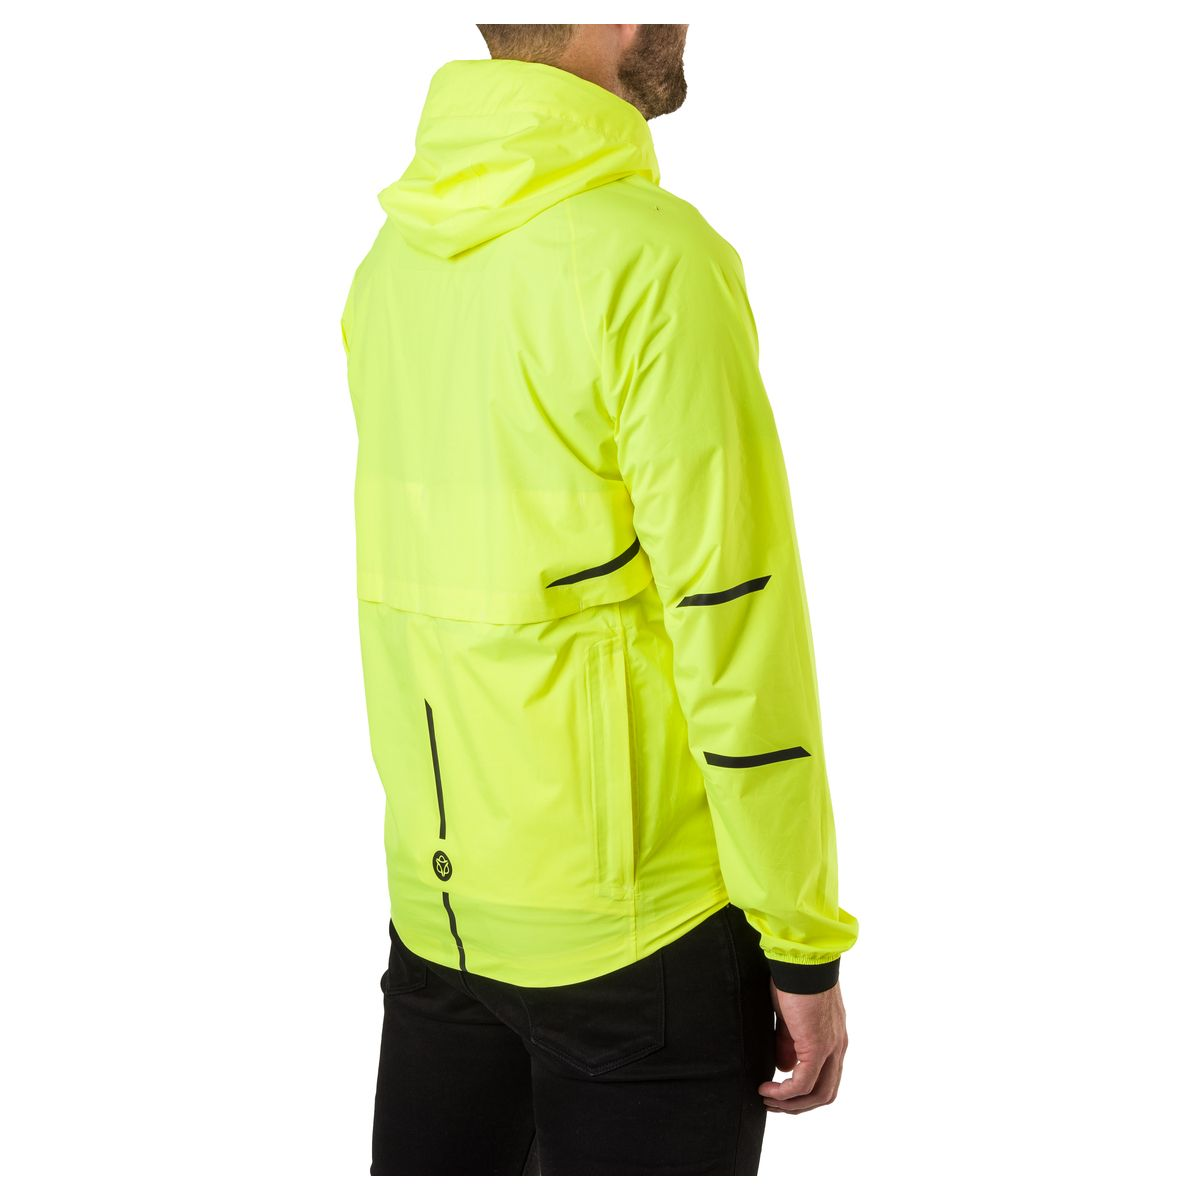 Compact Regenjas Commuter Heren Hivis fit example